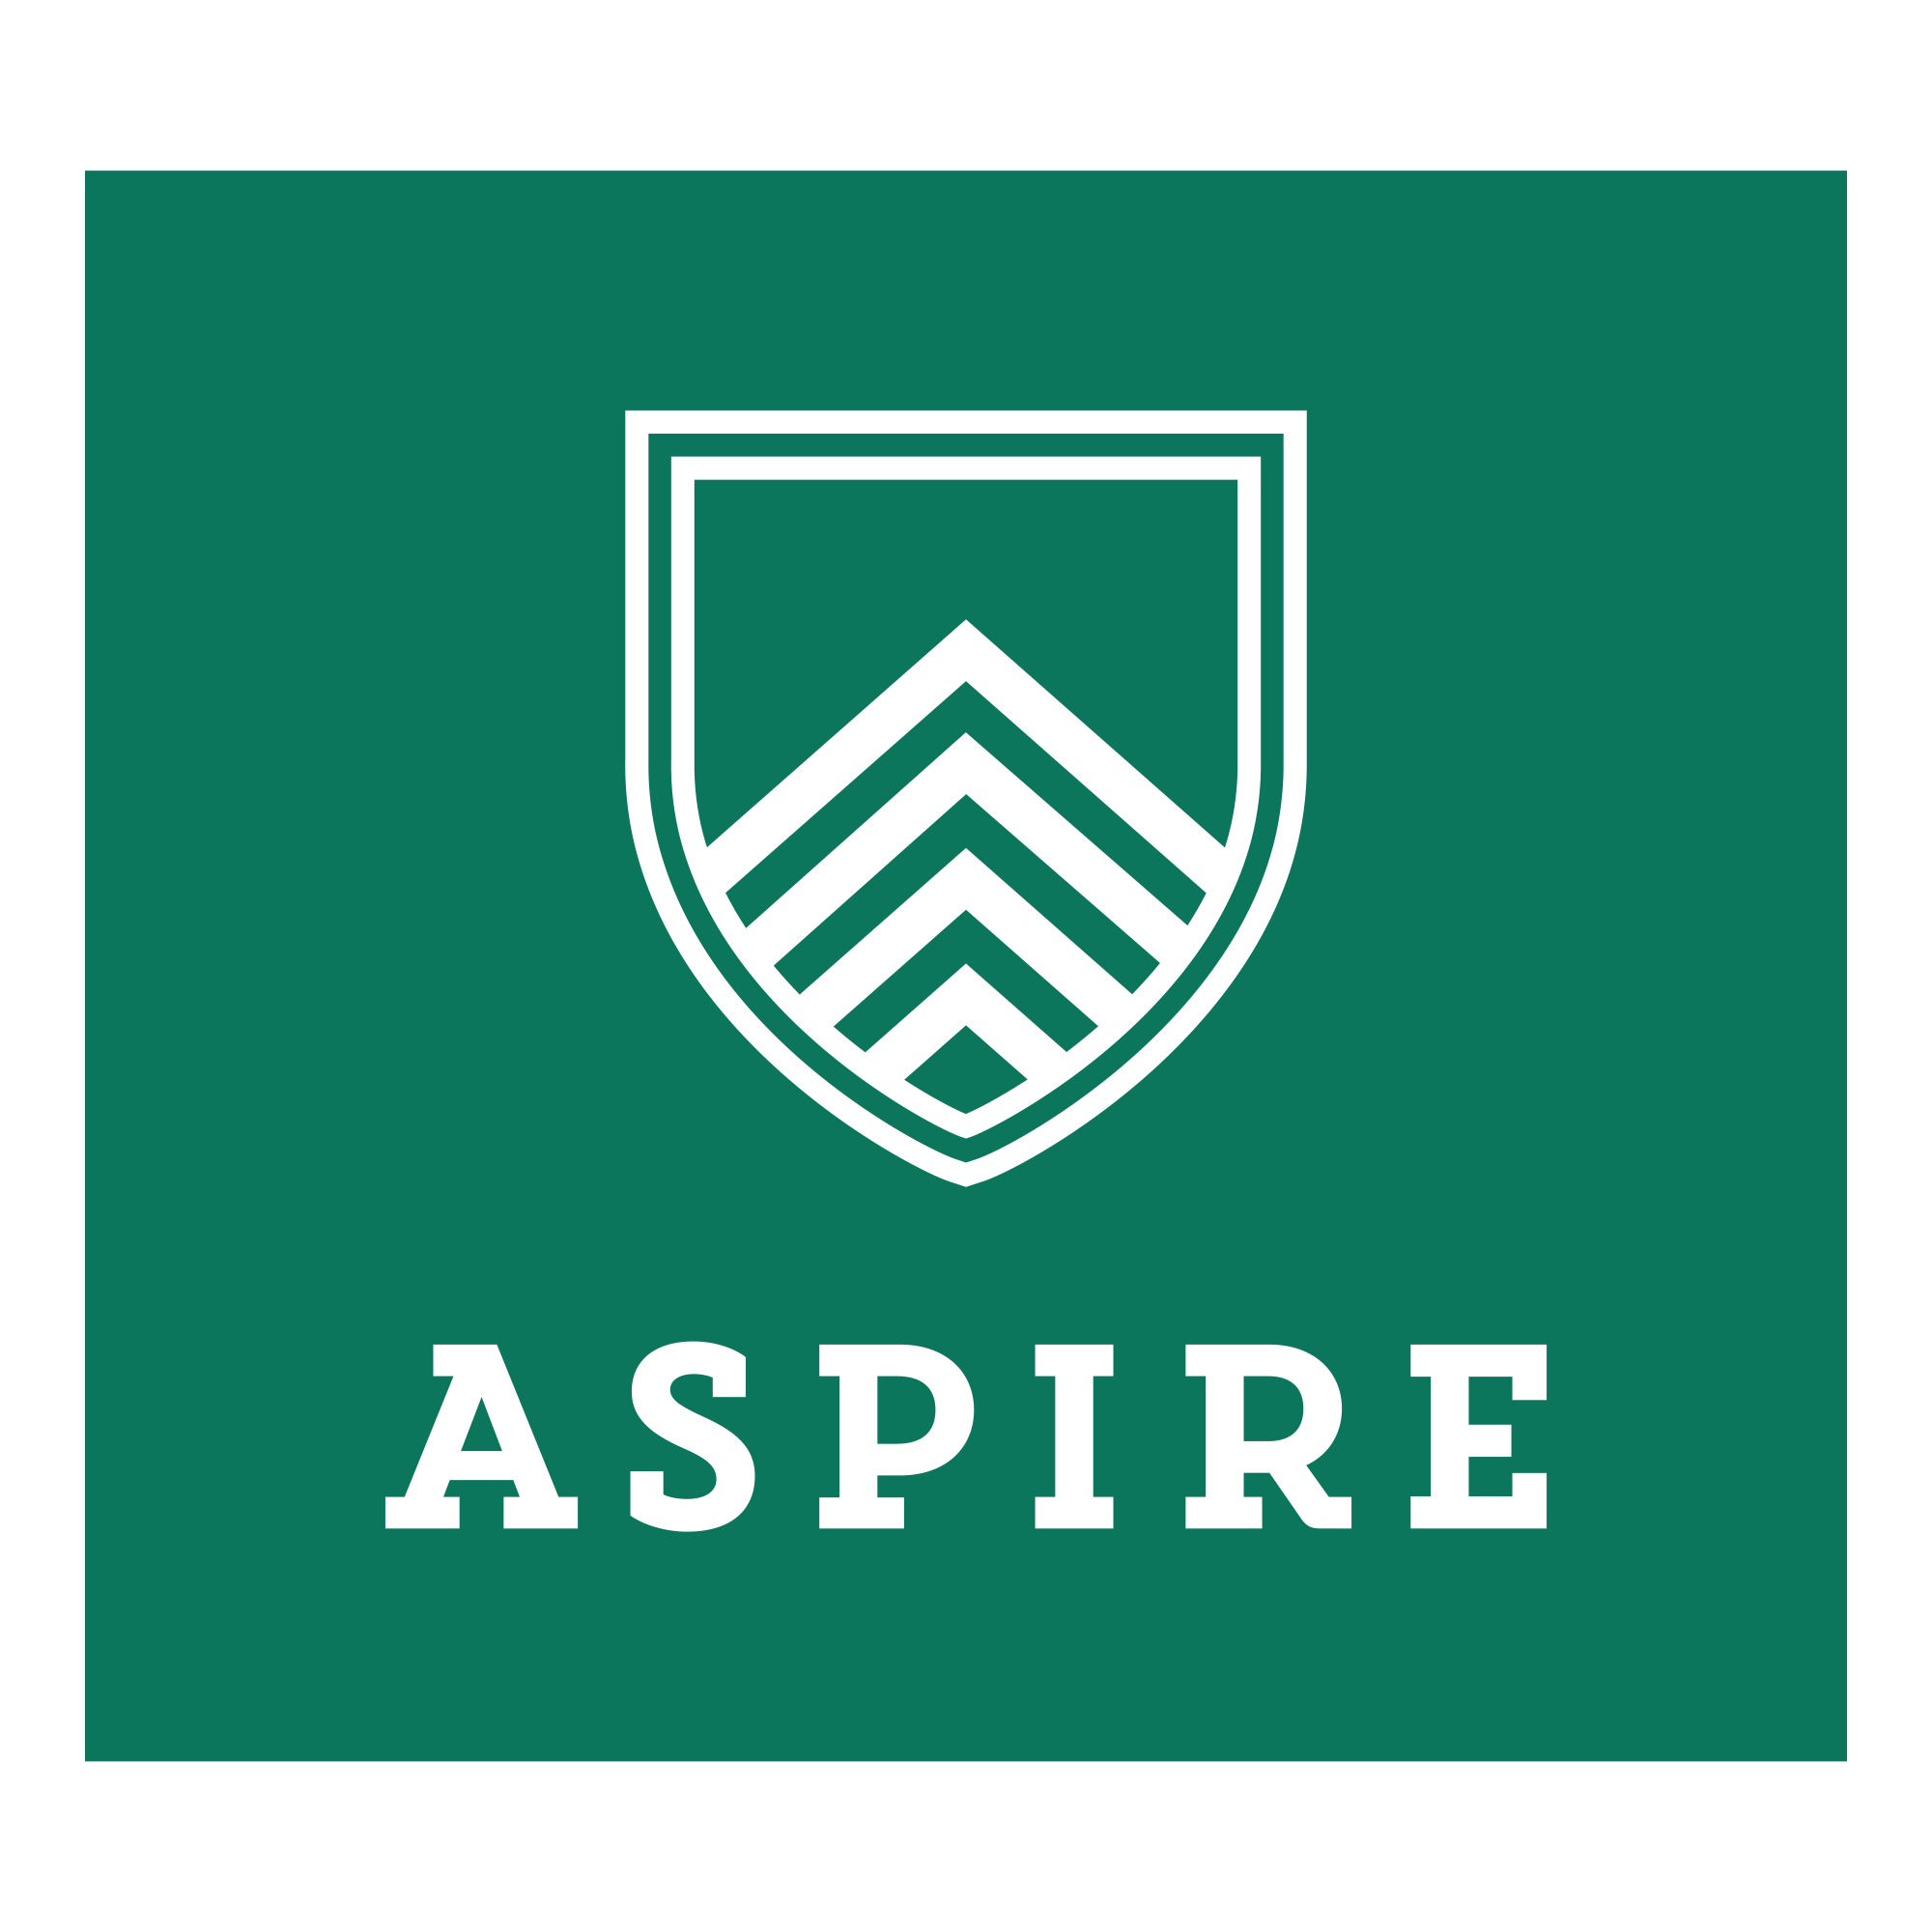 Aspire for Education logo